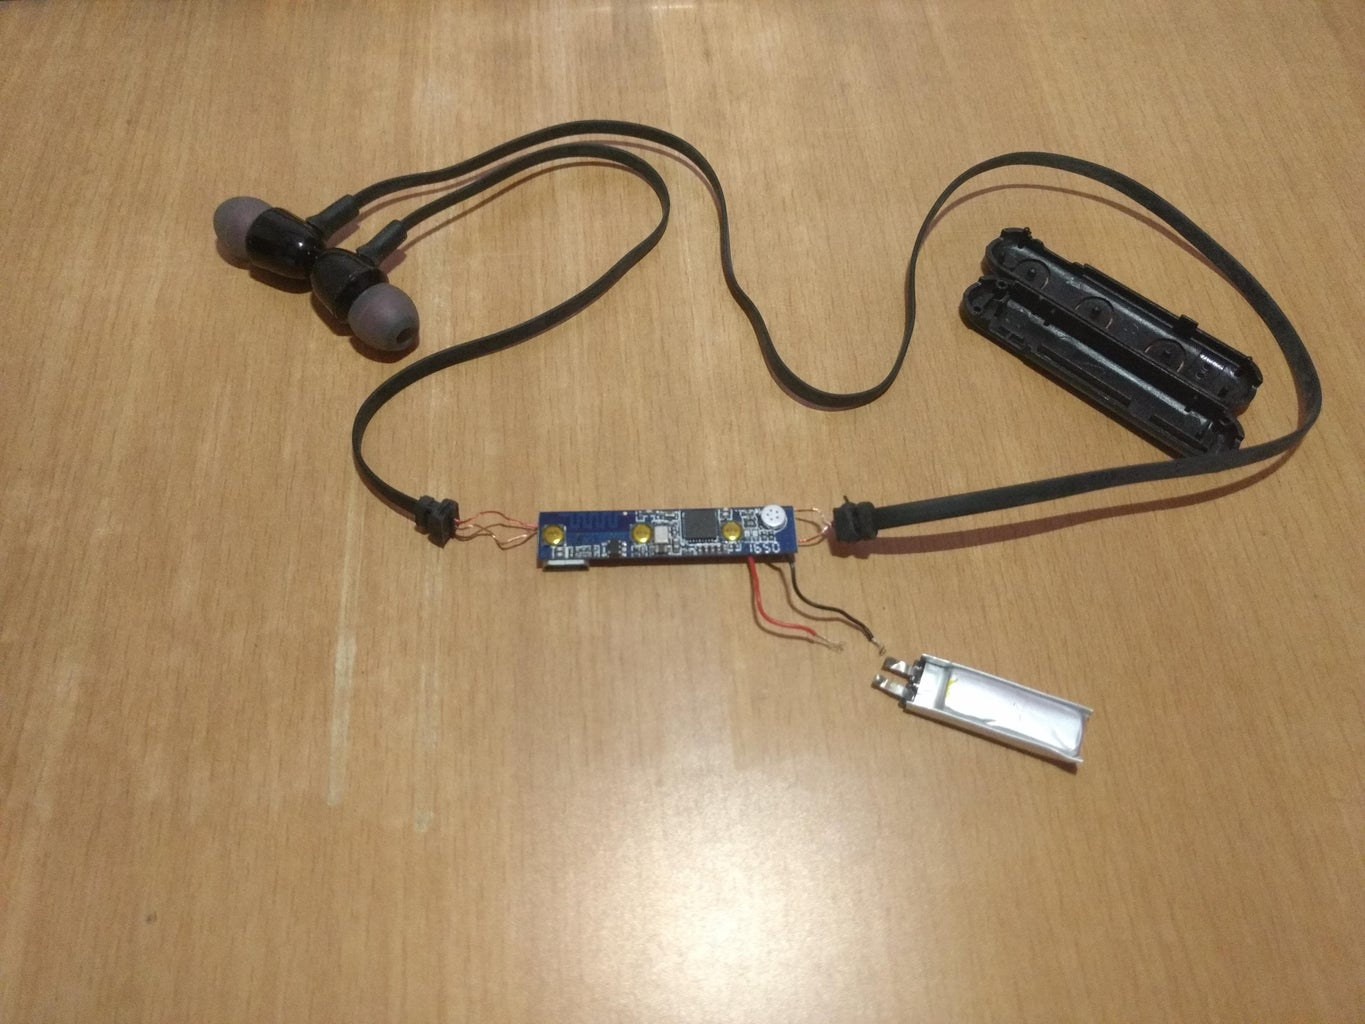 Disassemble Bluetooth Headset and Identify the Power and Audio Connections